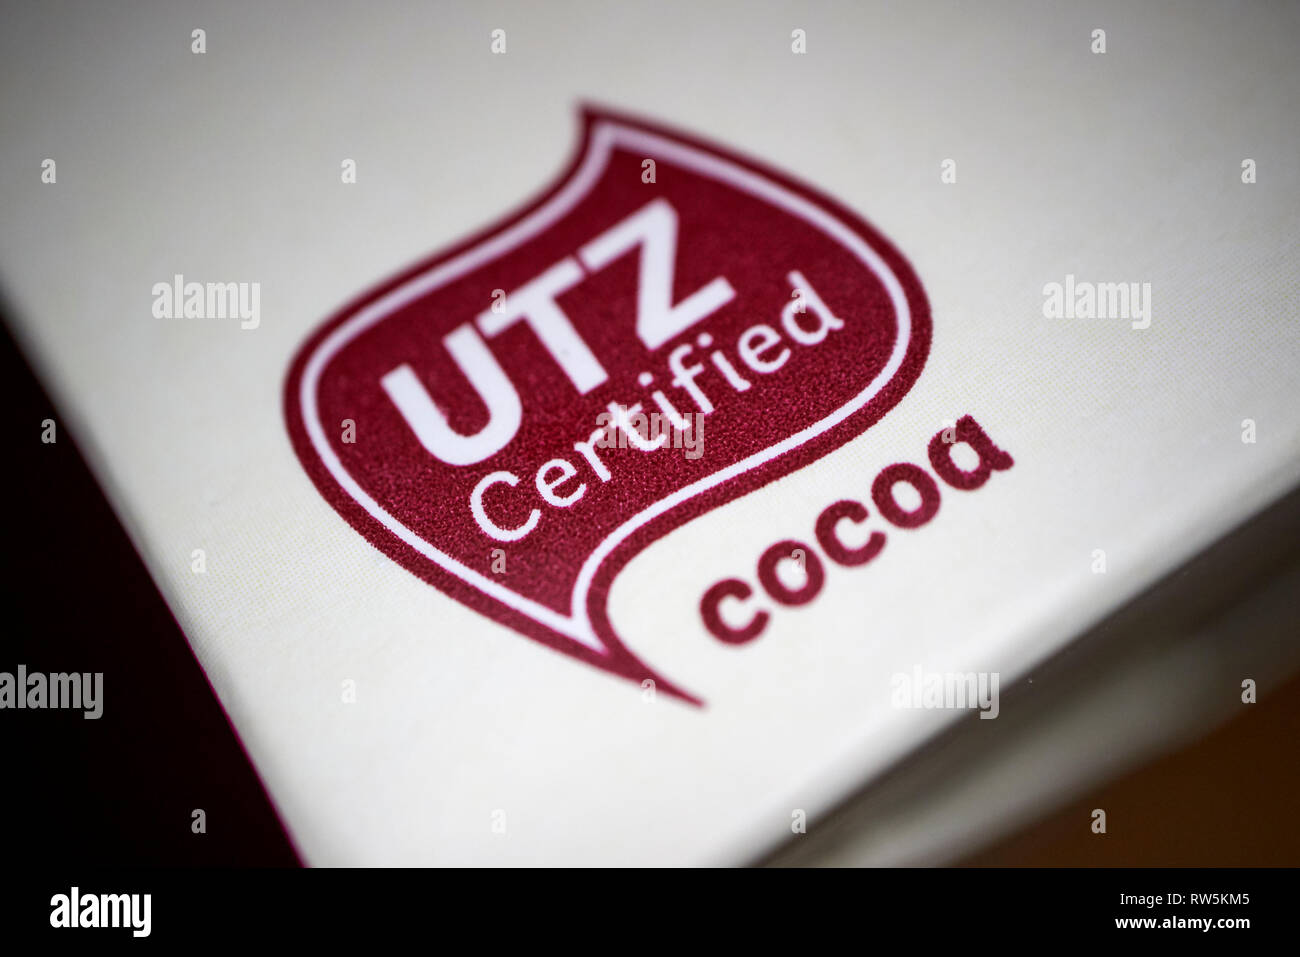 UTZ certified cocoa label on a bar of chocolate - Stock Image